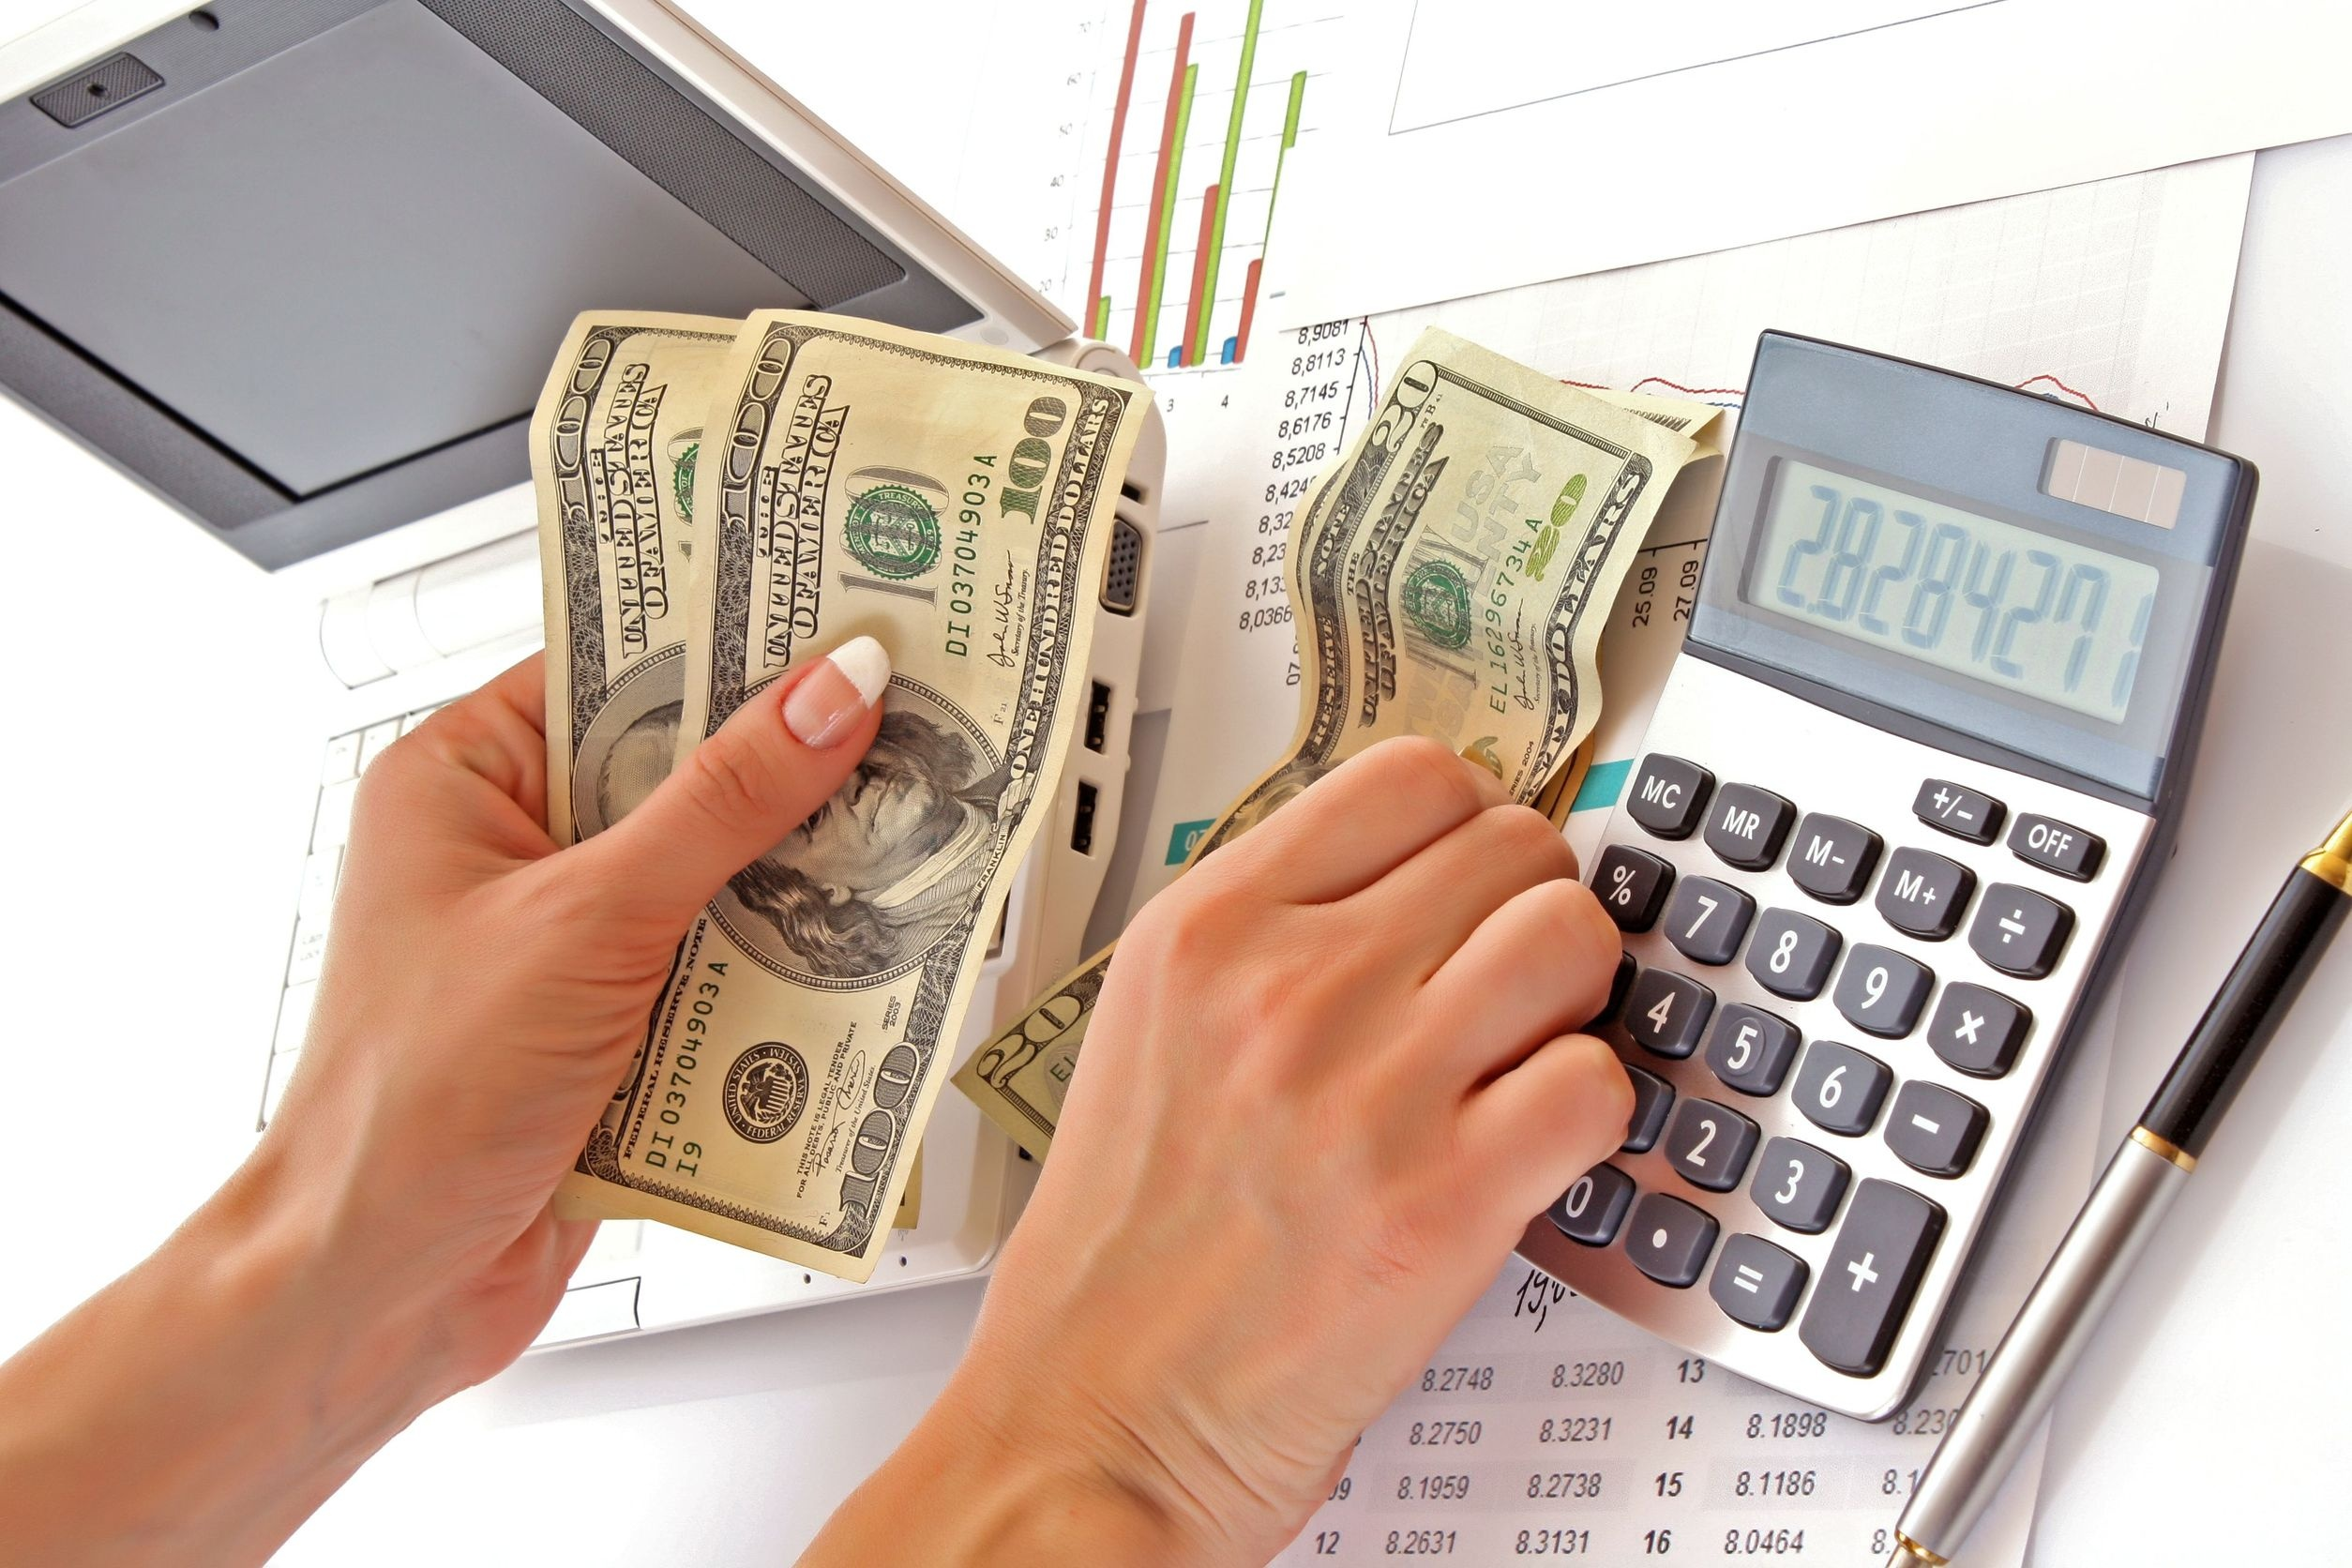 What to look for when purchasing a budget planner